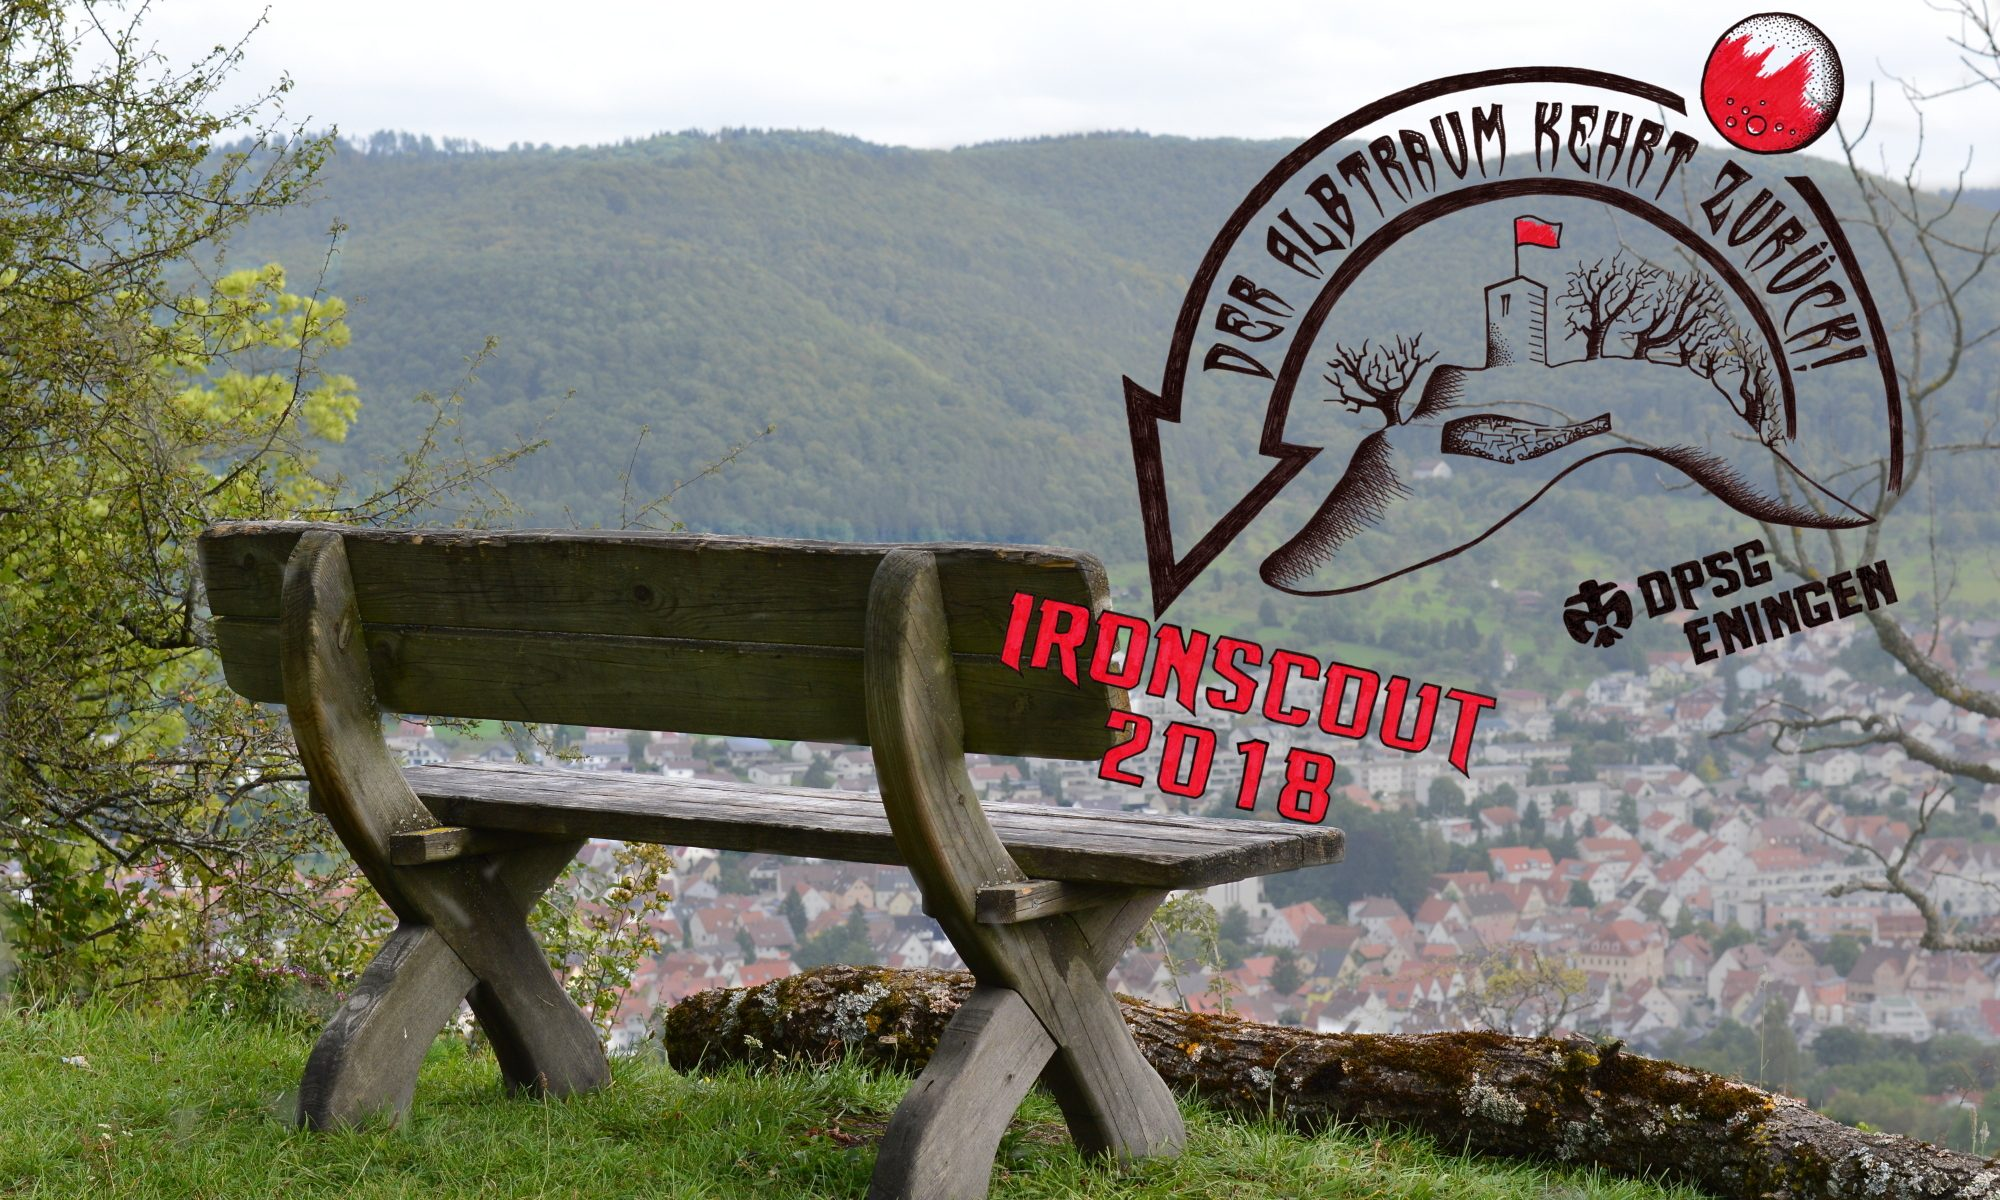 Ironscout 2018